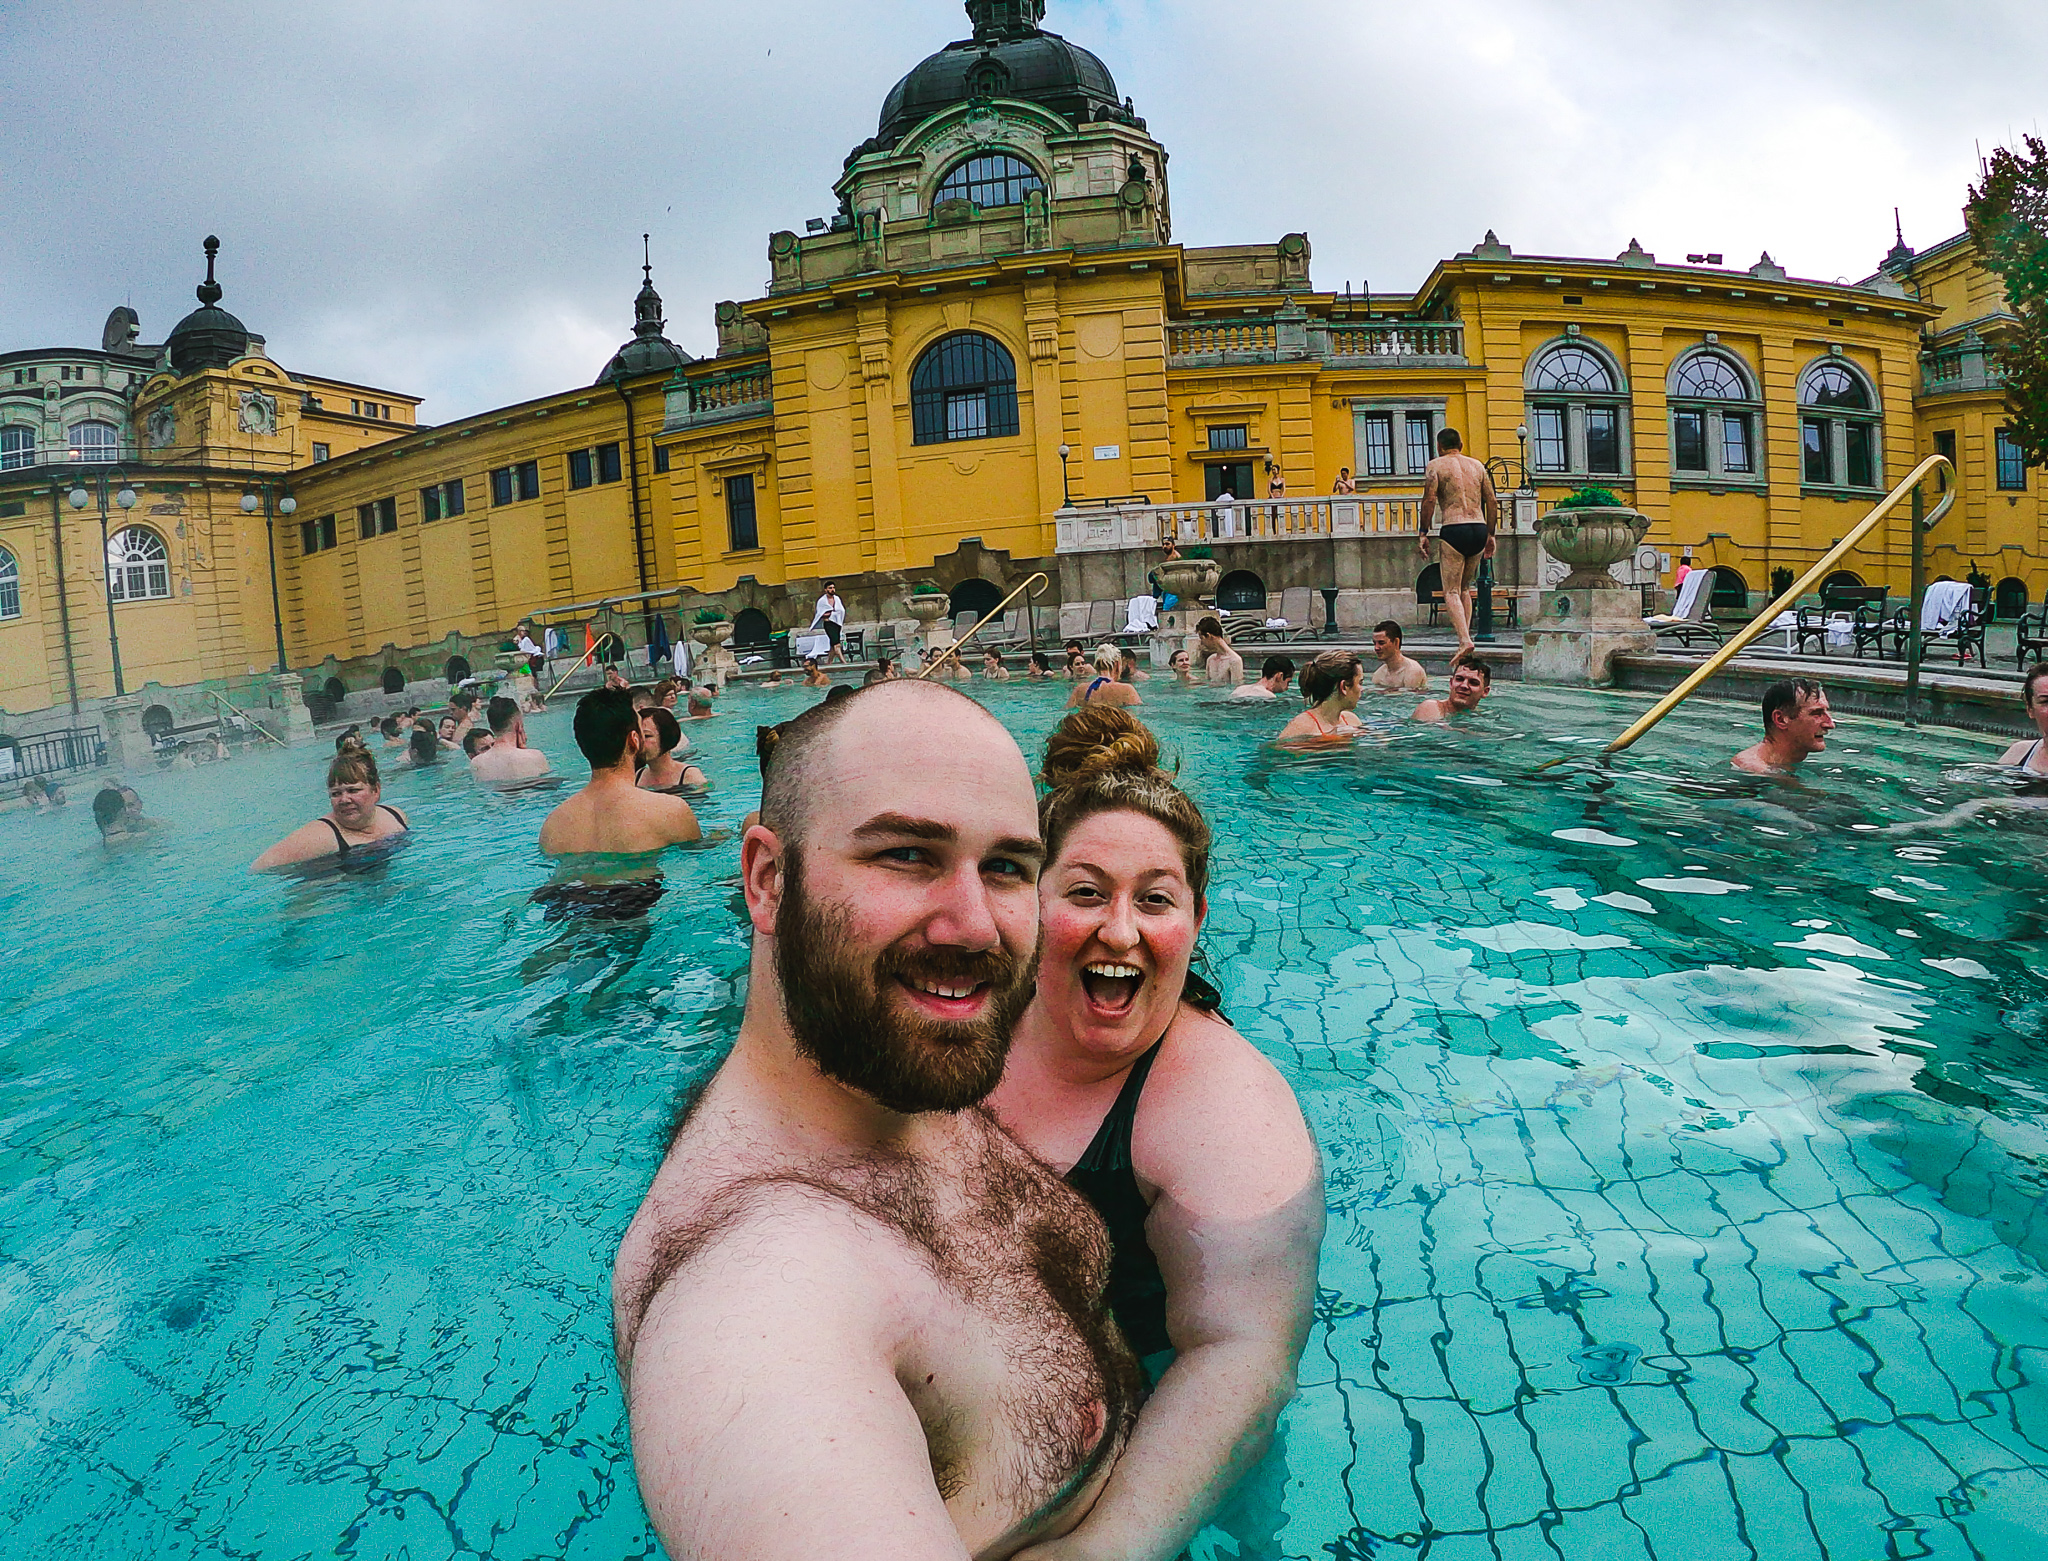 Sorcha and Matt in the outdoor pool at Szechyi Spa in Budapest, the yellow palace juxtaposes the teal tiled heated pool with steam rising around them. Sorcha is wearing a green one piece swim suit and Matt is wearing grey trunks